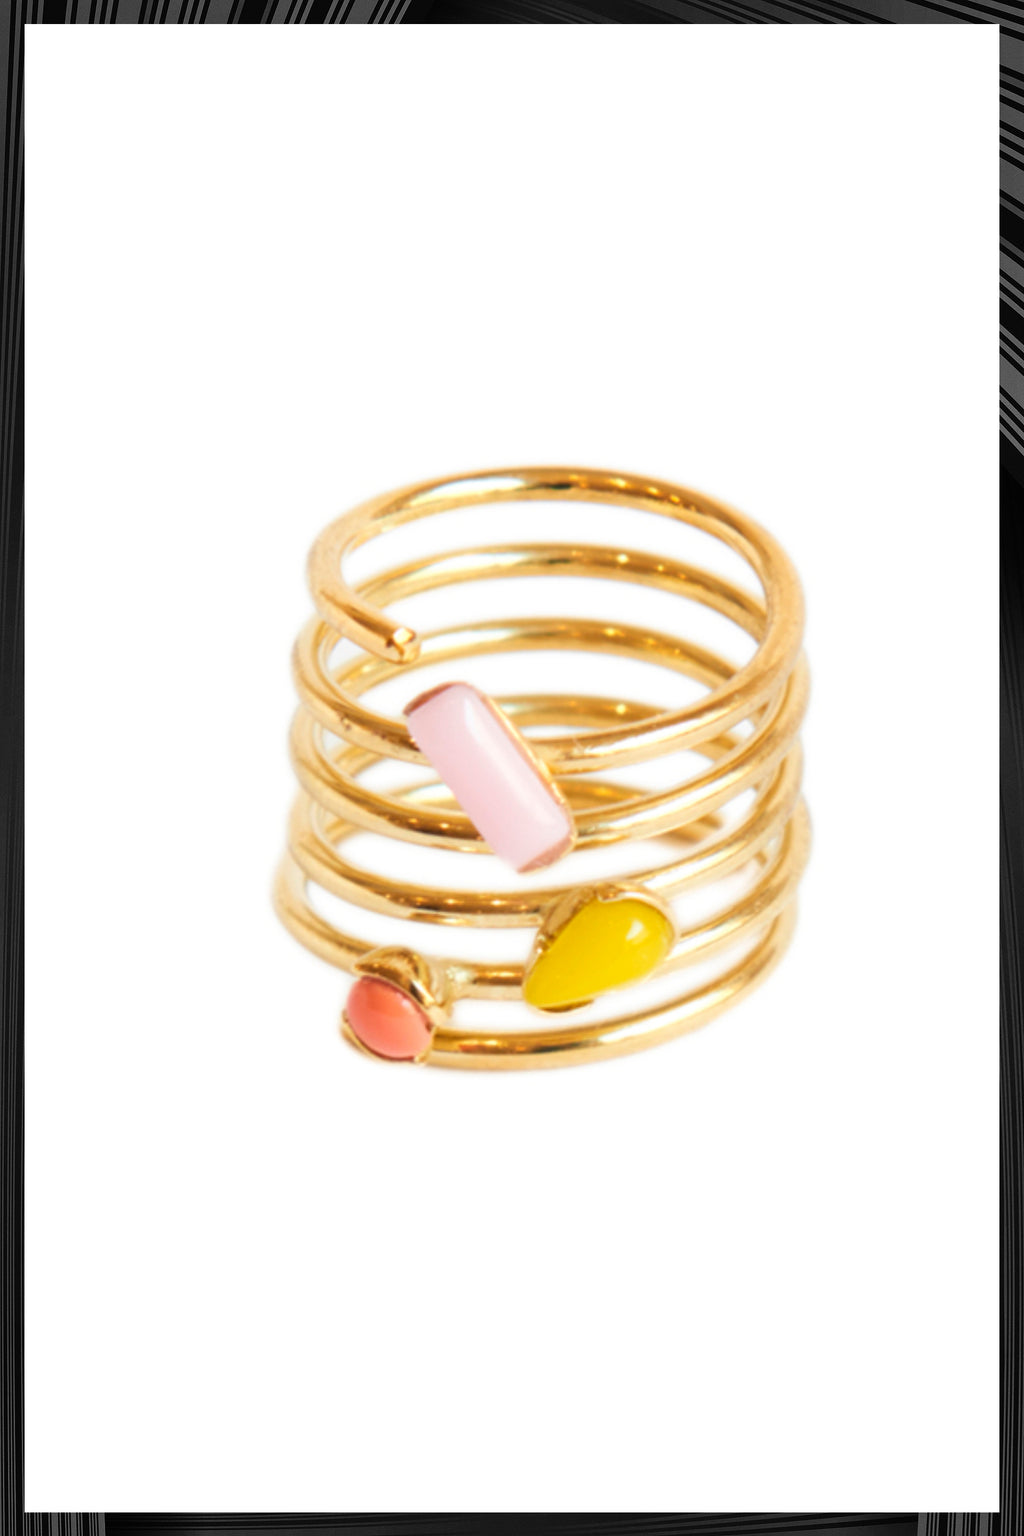 Six Spiral Ring | Free Delivery - 2-3 Weeks Shipping